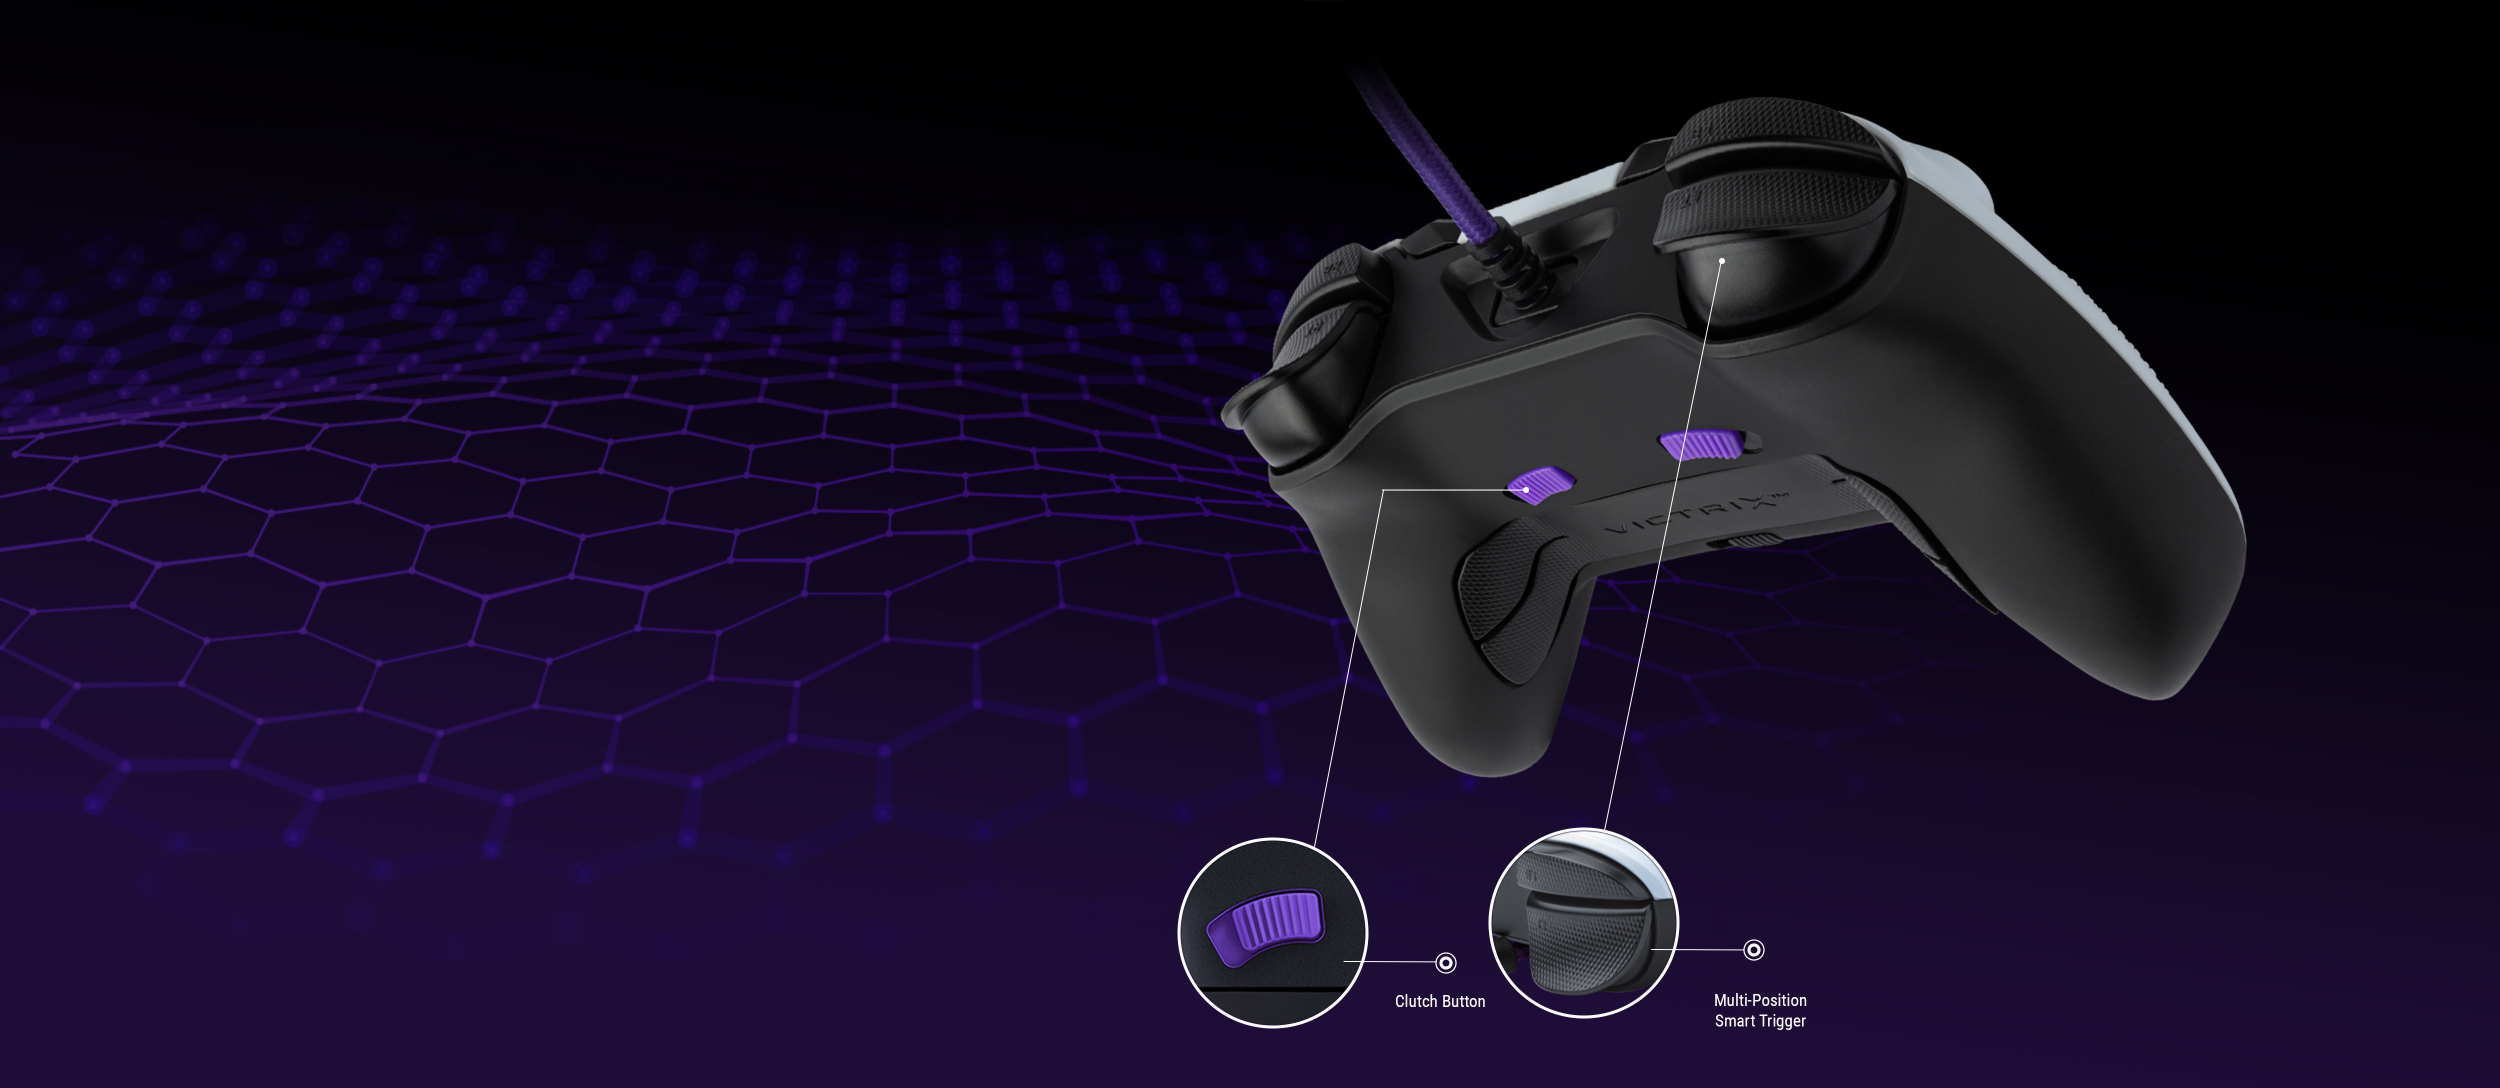 Victrix Gambit Controller Image highlighting the clutch button and multi-position smart trigger.